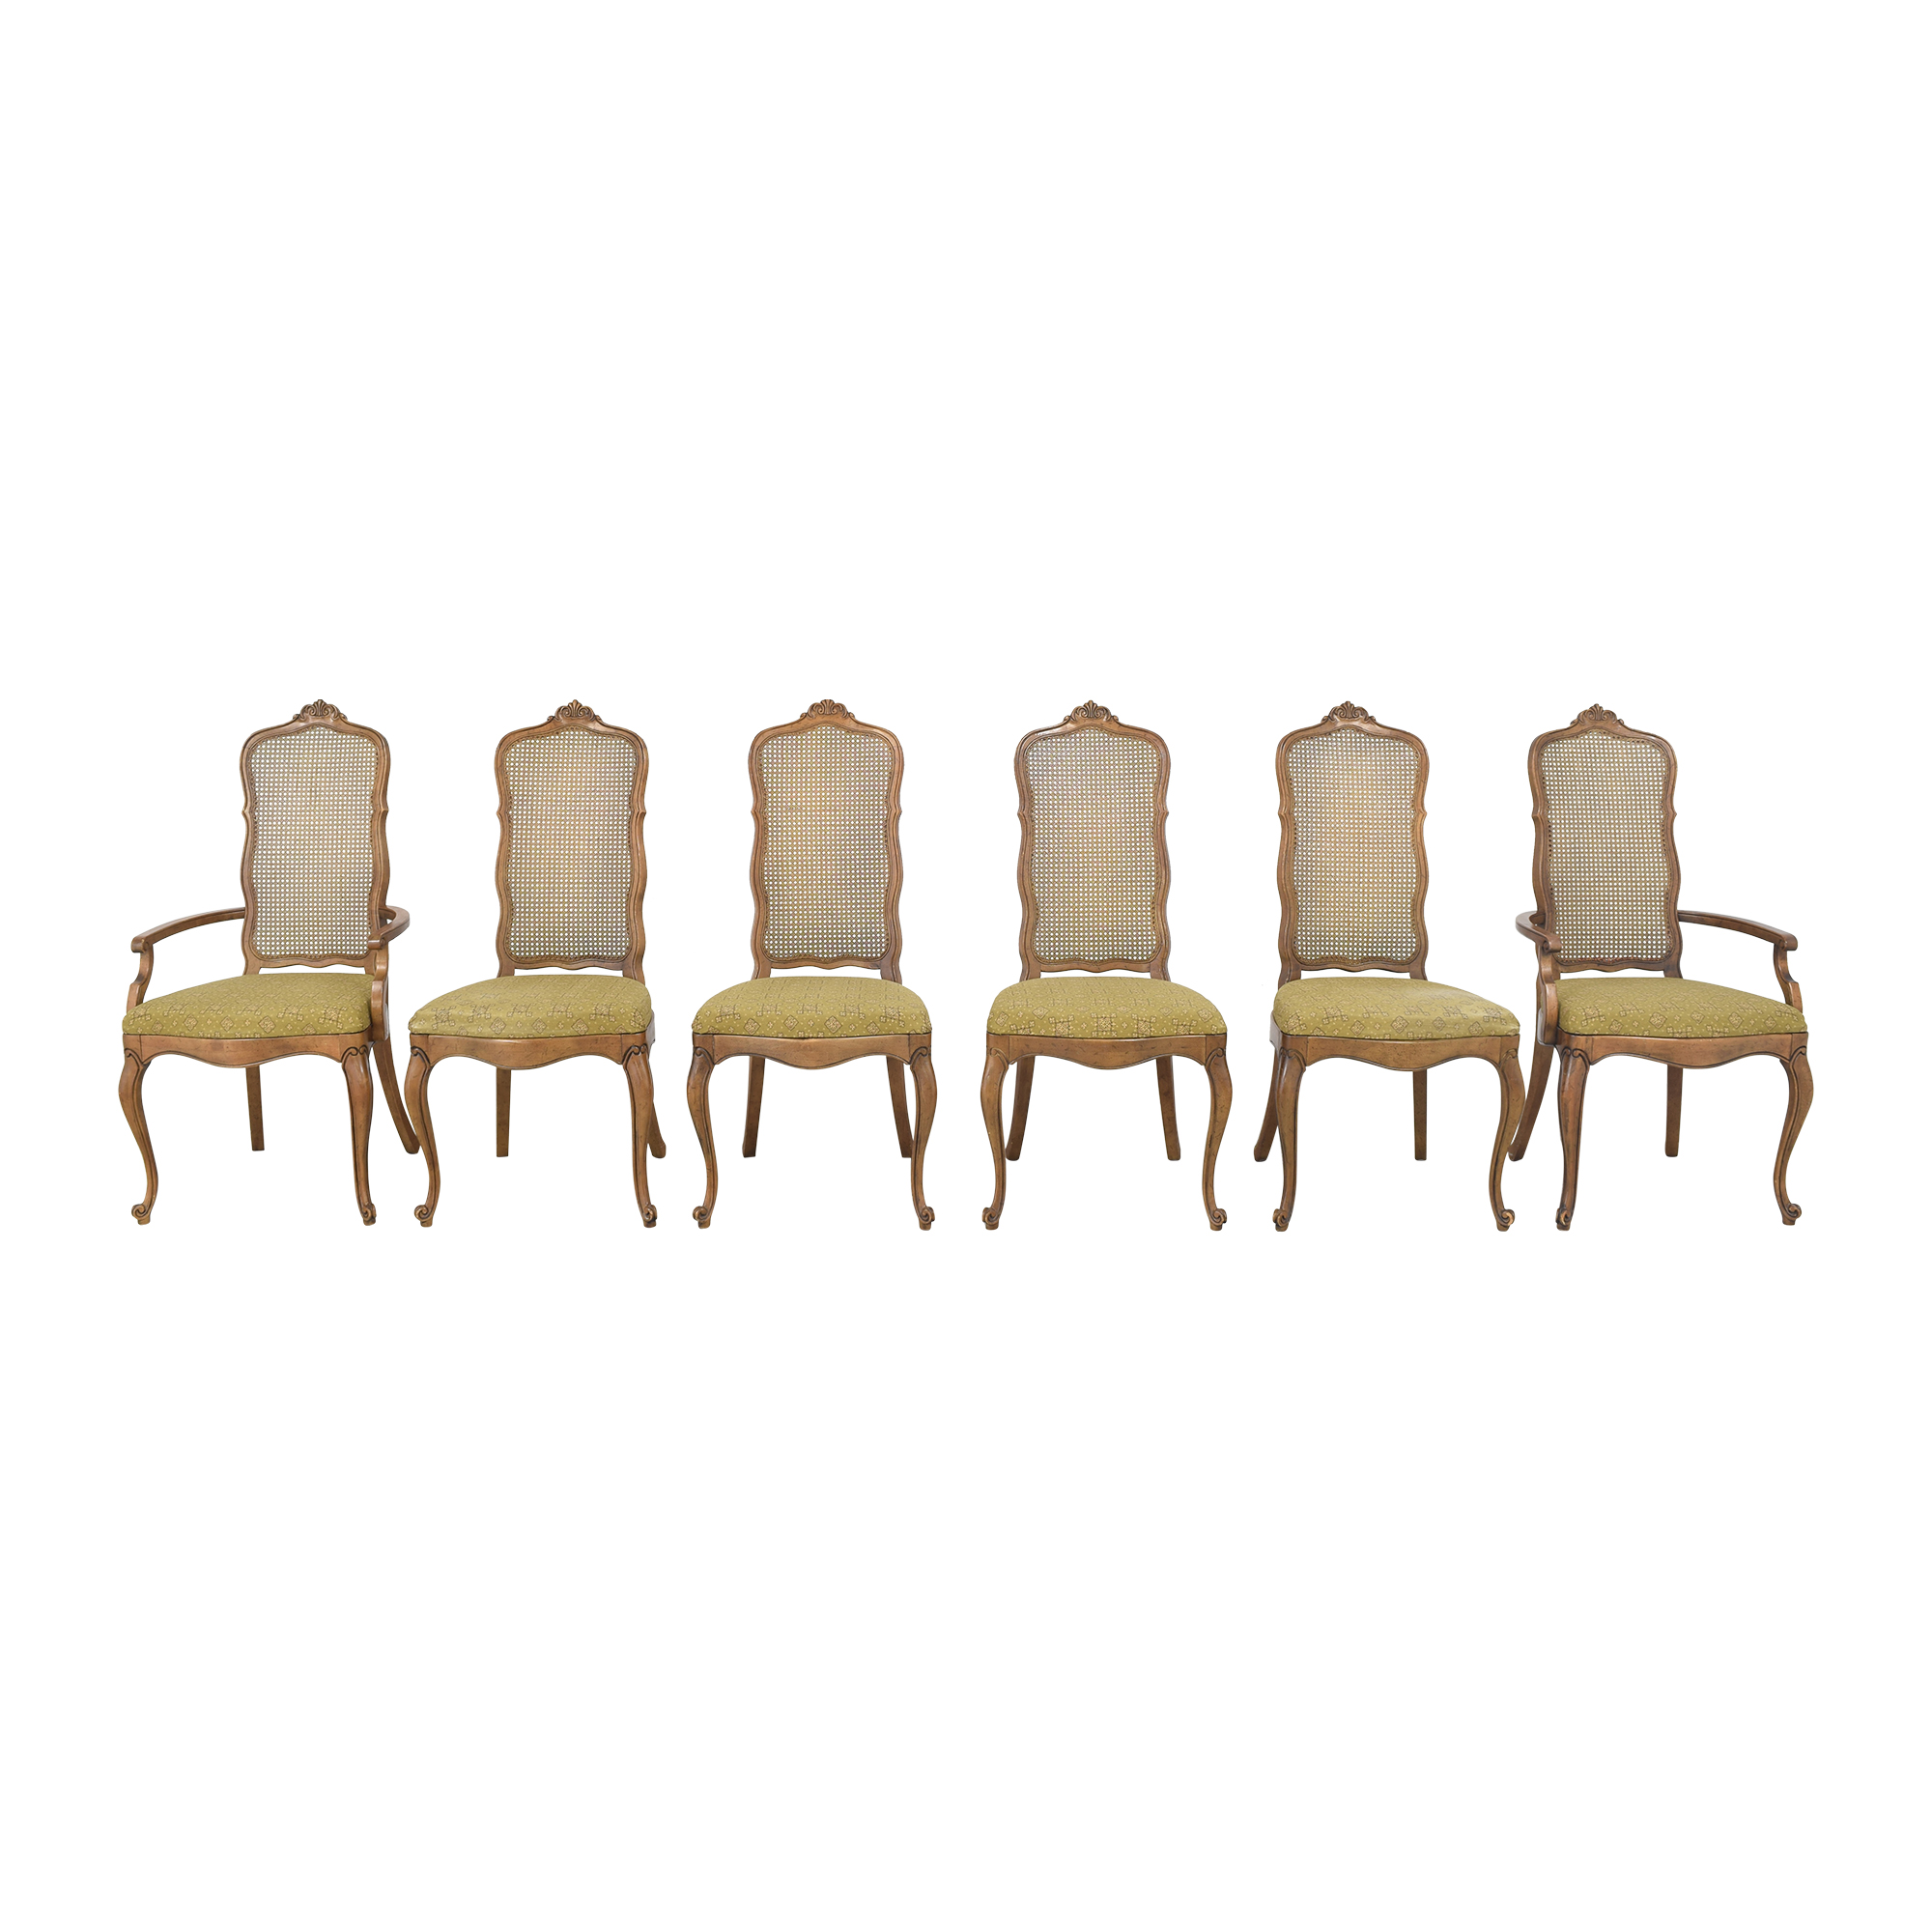 Drexel Touraine Dining Chairs / Chairs